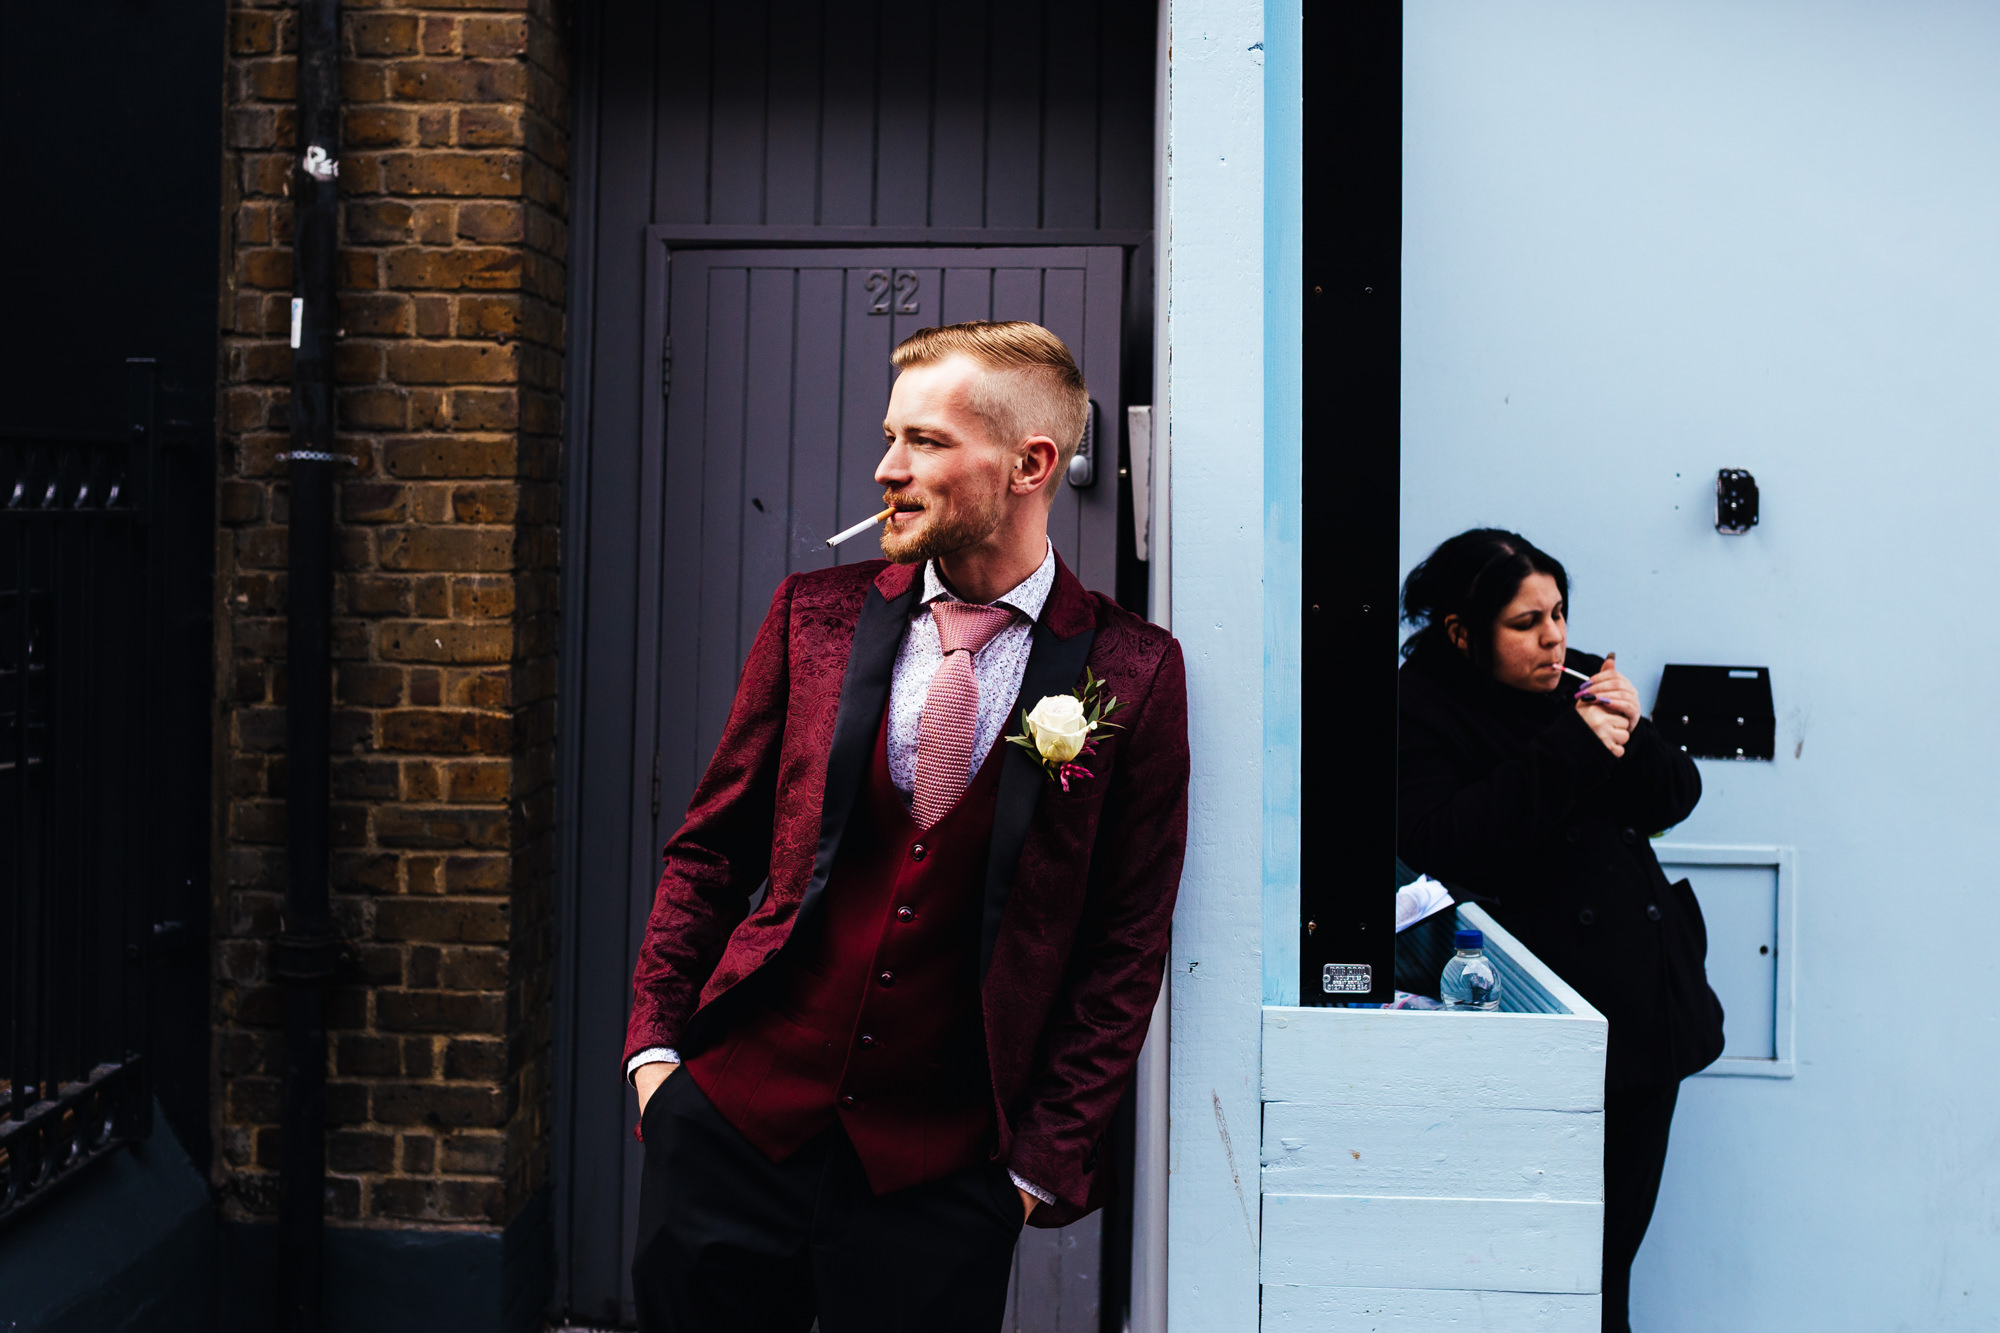 Groom smoking before leaving for wedding with member of the public mirroring him behind blue wall